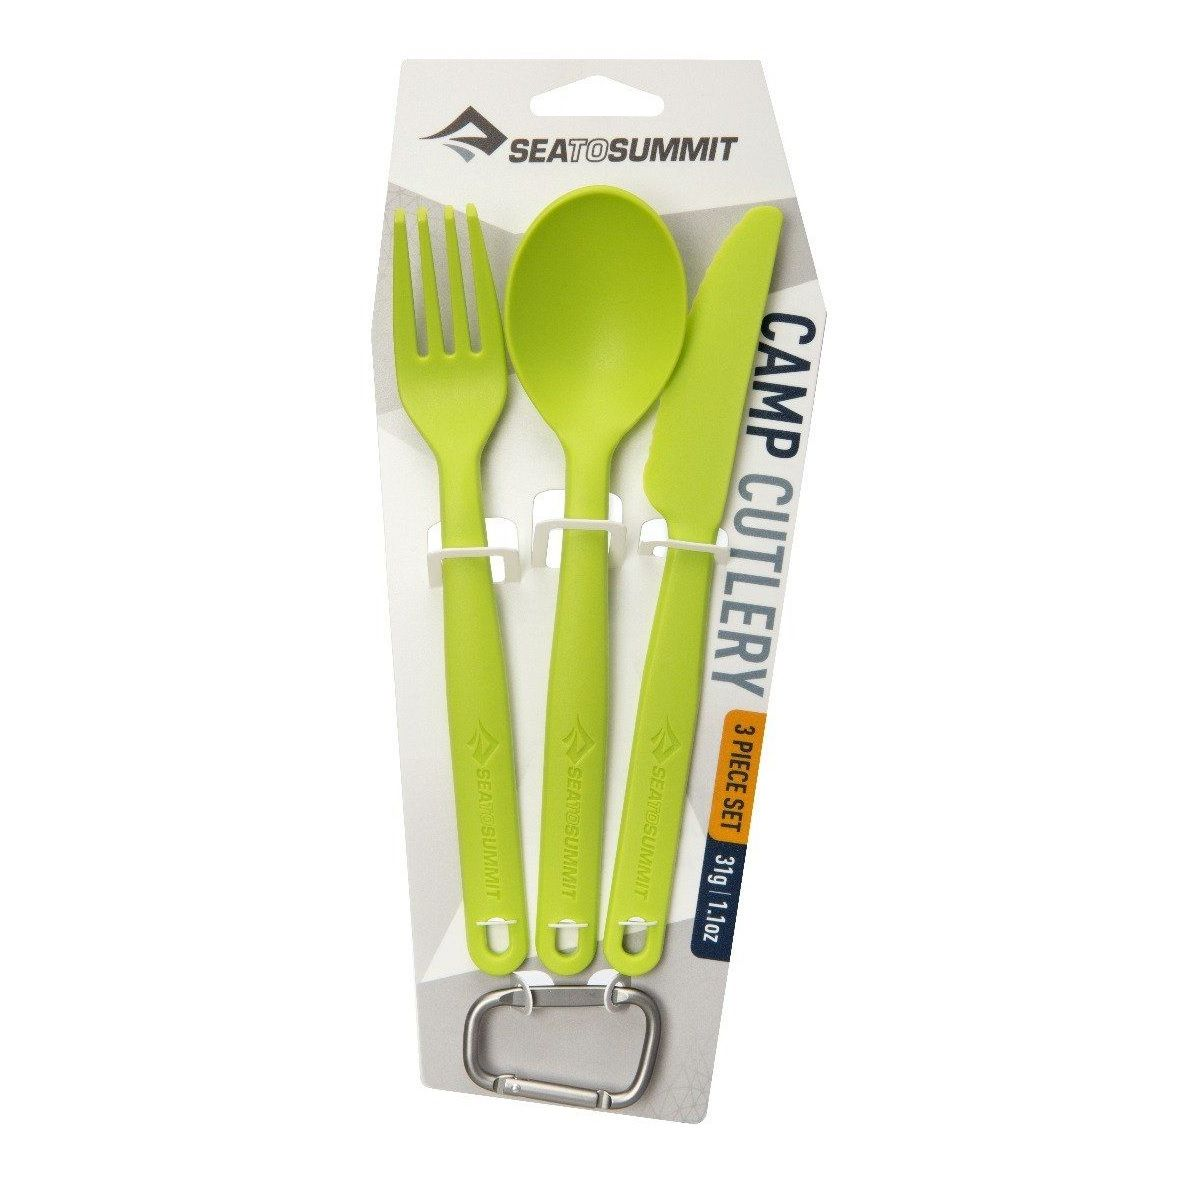 Sea to Summit Camp Cutlery Set